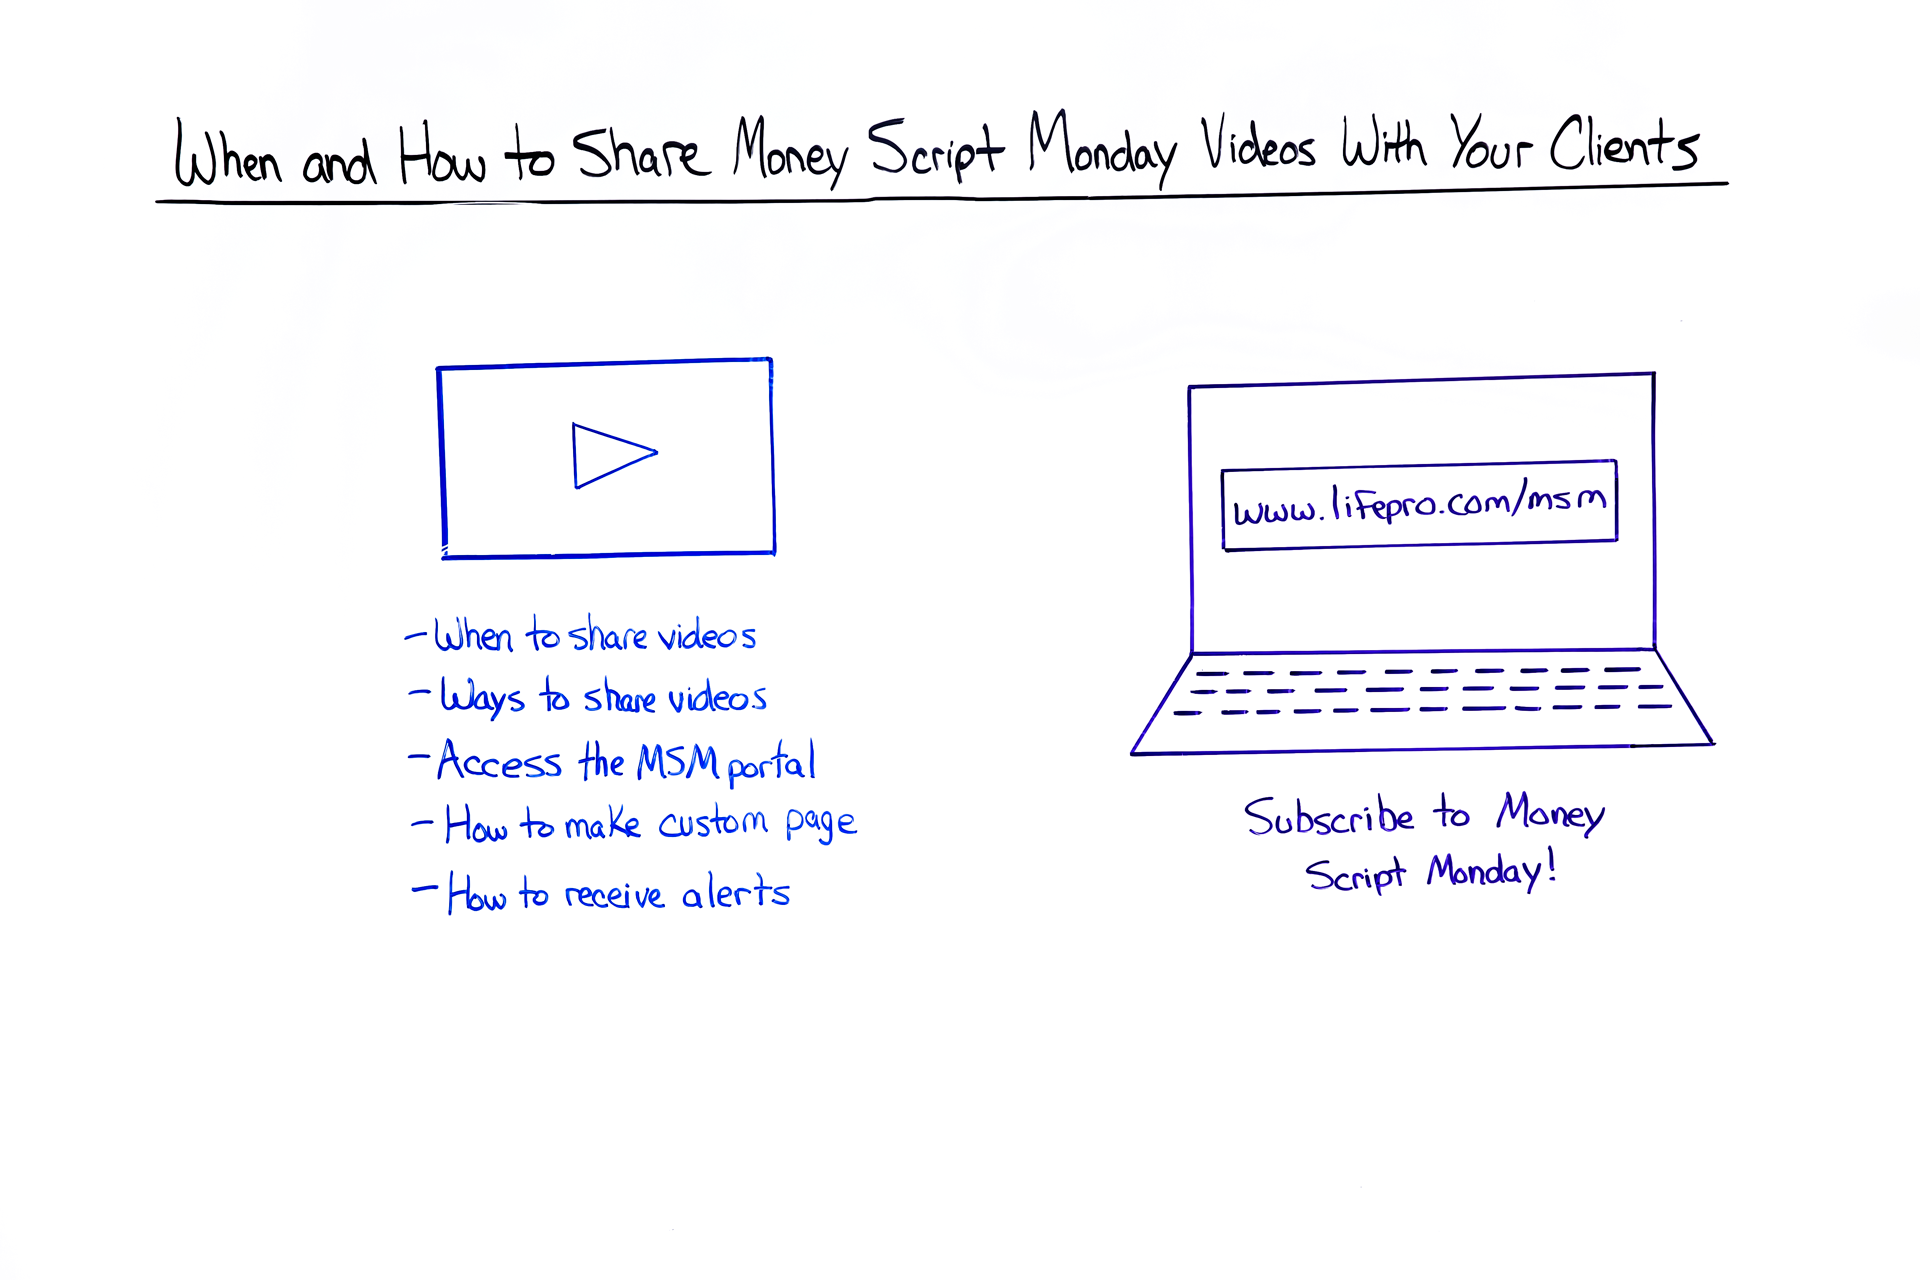 How and When to Share Money Script Monday Videos with Your Clients